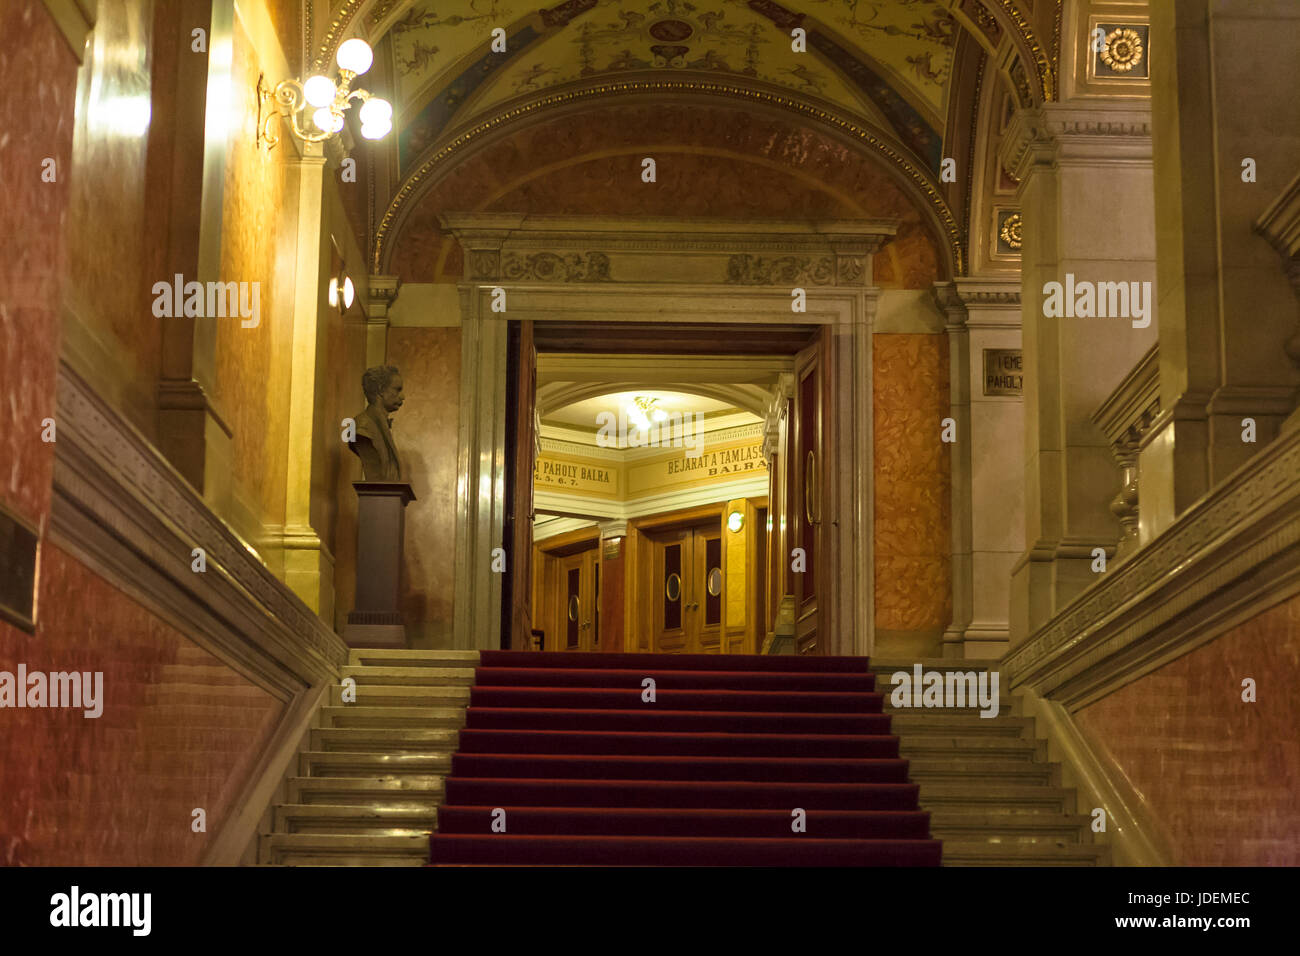 Opera House Foyer : Foyer of the hungarian state opera house andr�ssy �tca